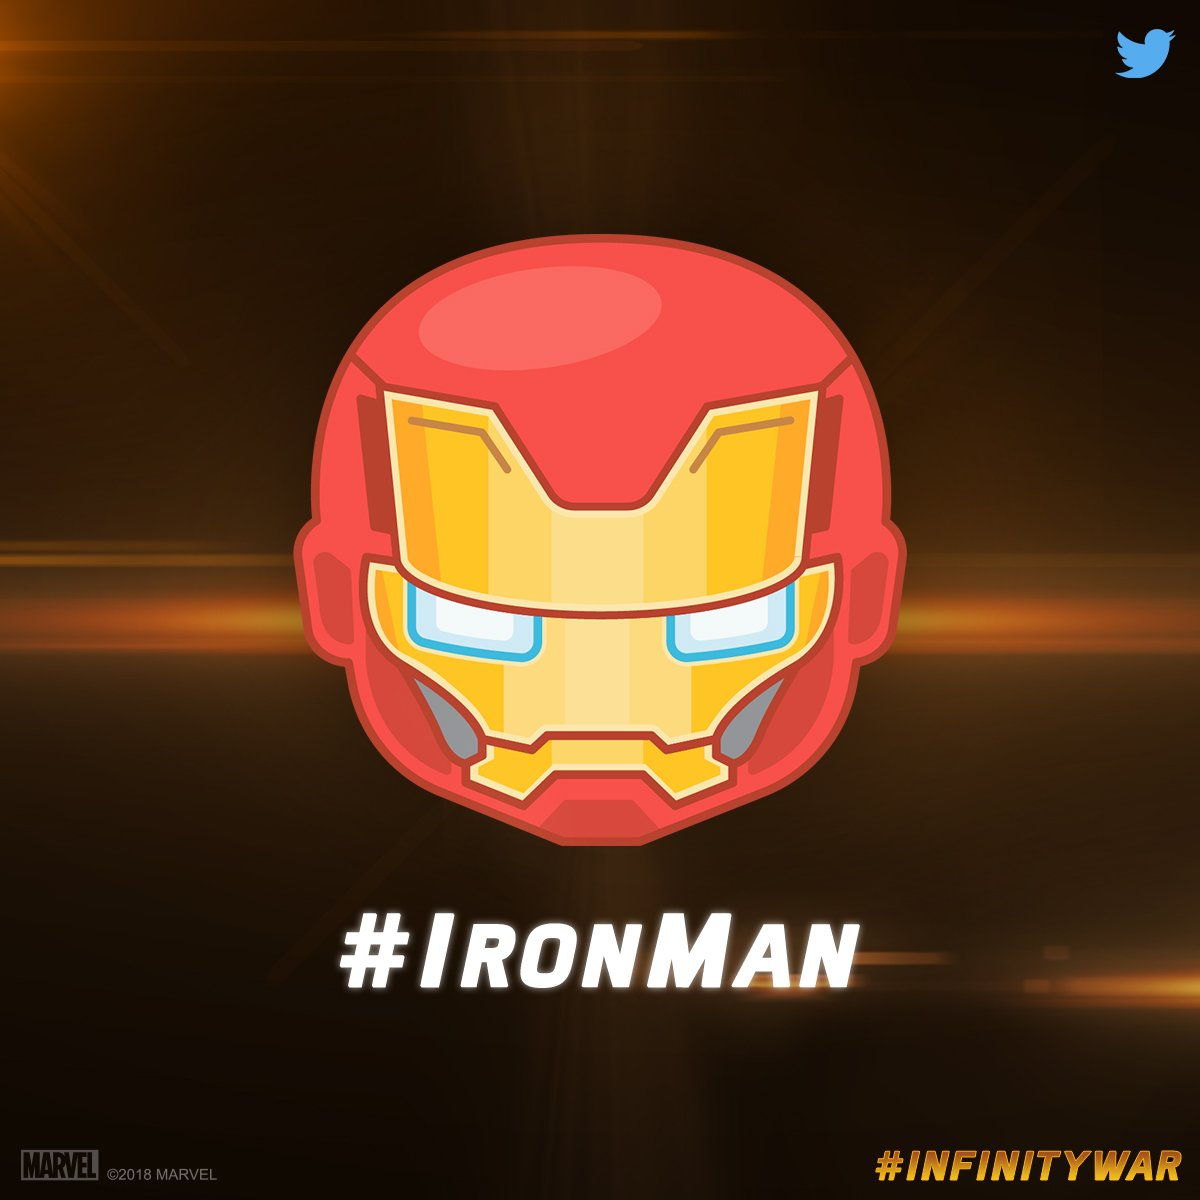 #IronMan suited and booted! #InfinityWar https://t.co/WMUEu5i16H